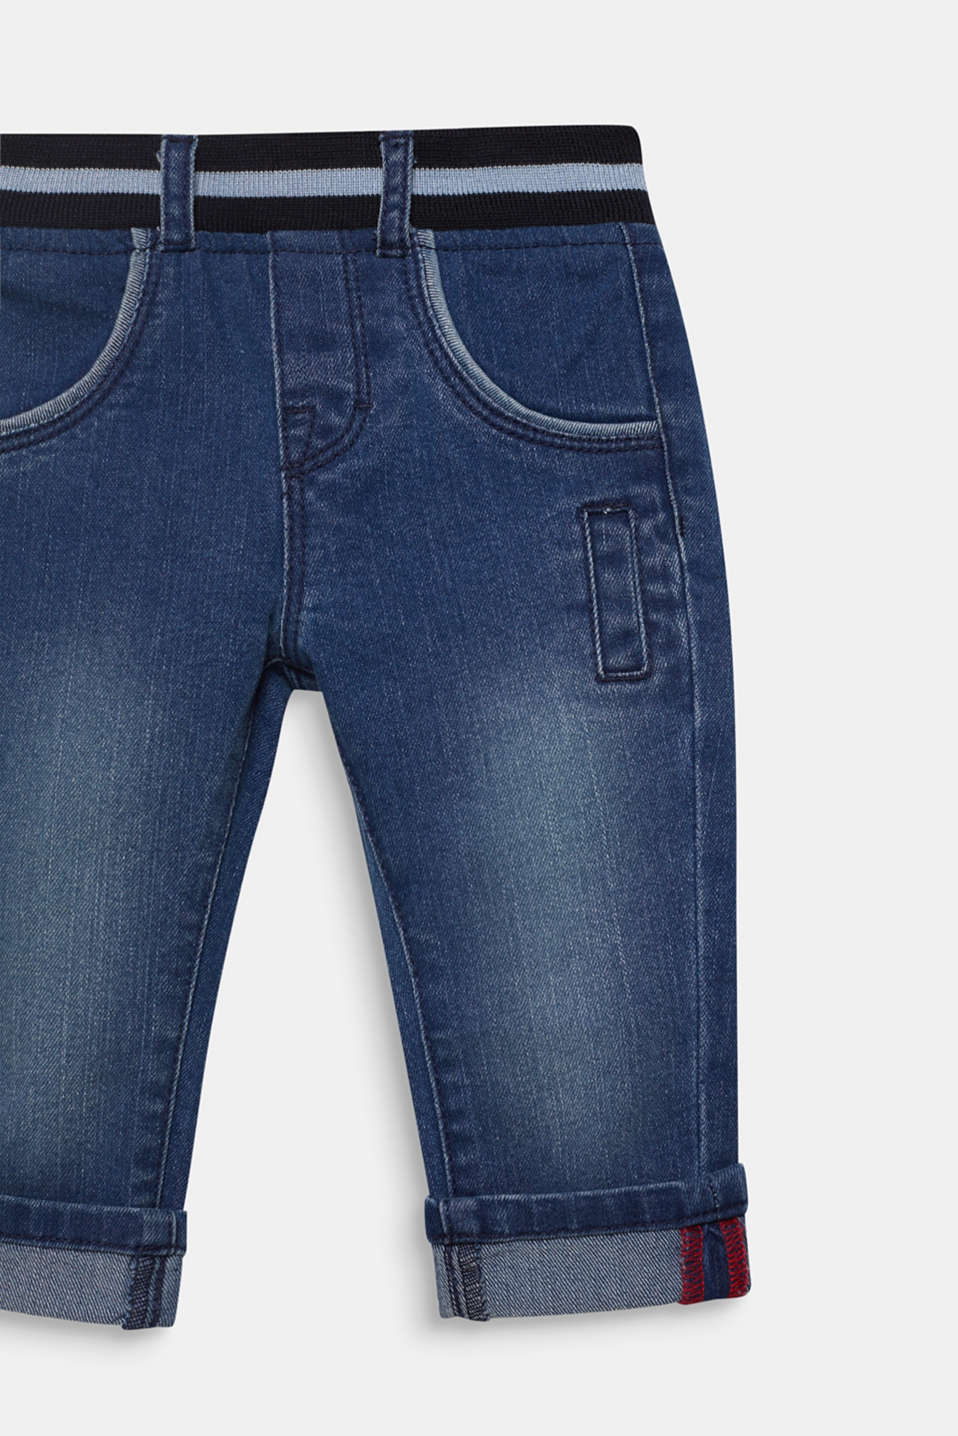 Jeans with an elasticated ribbed waistband, LCMEDIUM WASH DE, detail image number 2